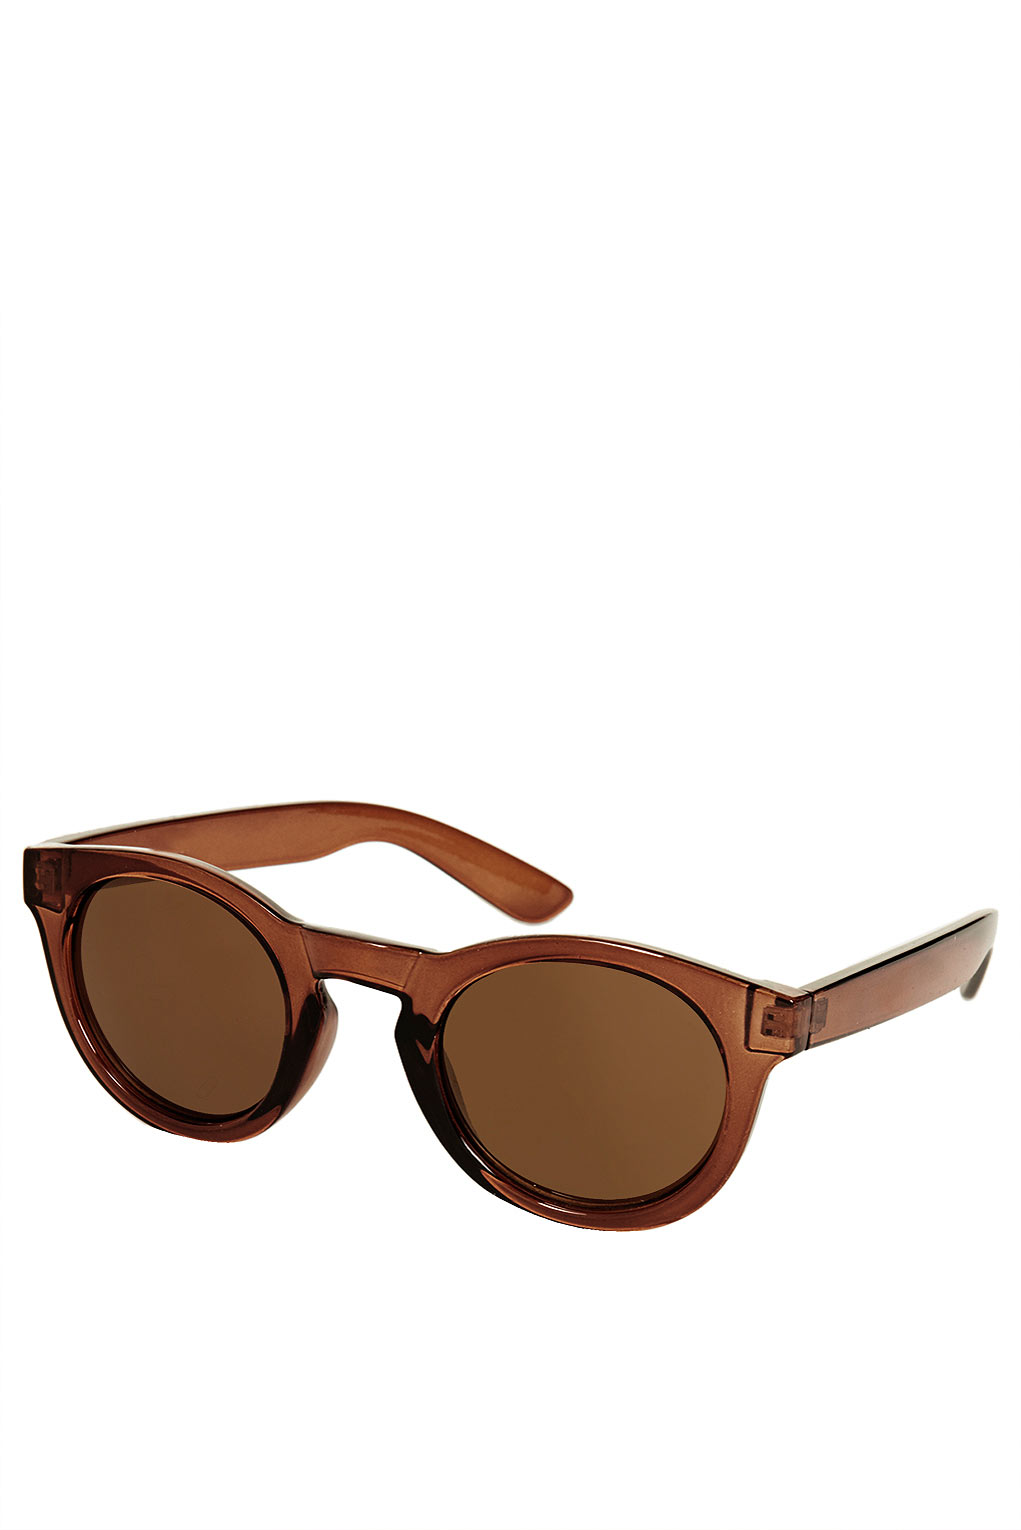 Topshop Chunky Crystal Round Sunglasses